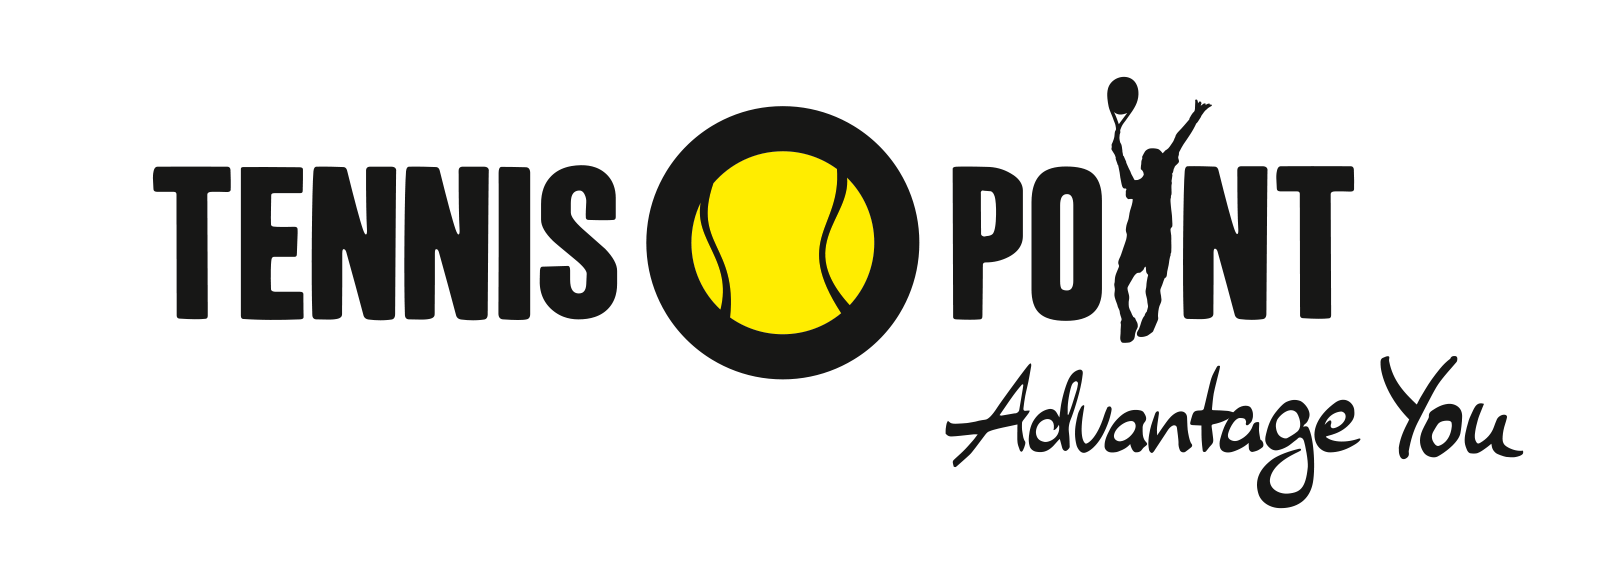 Tennis-Point neues Logo